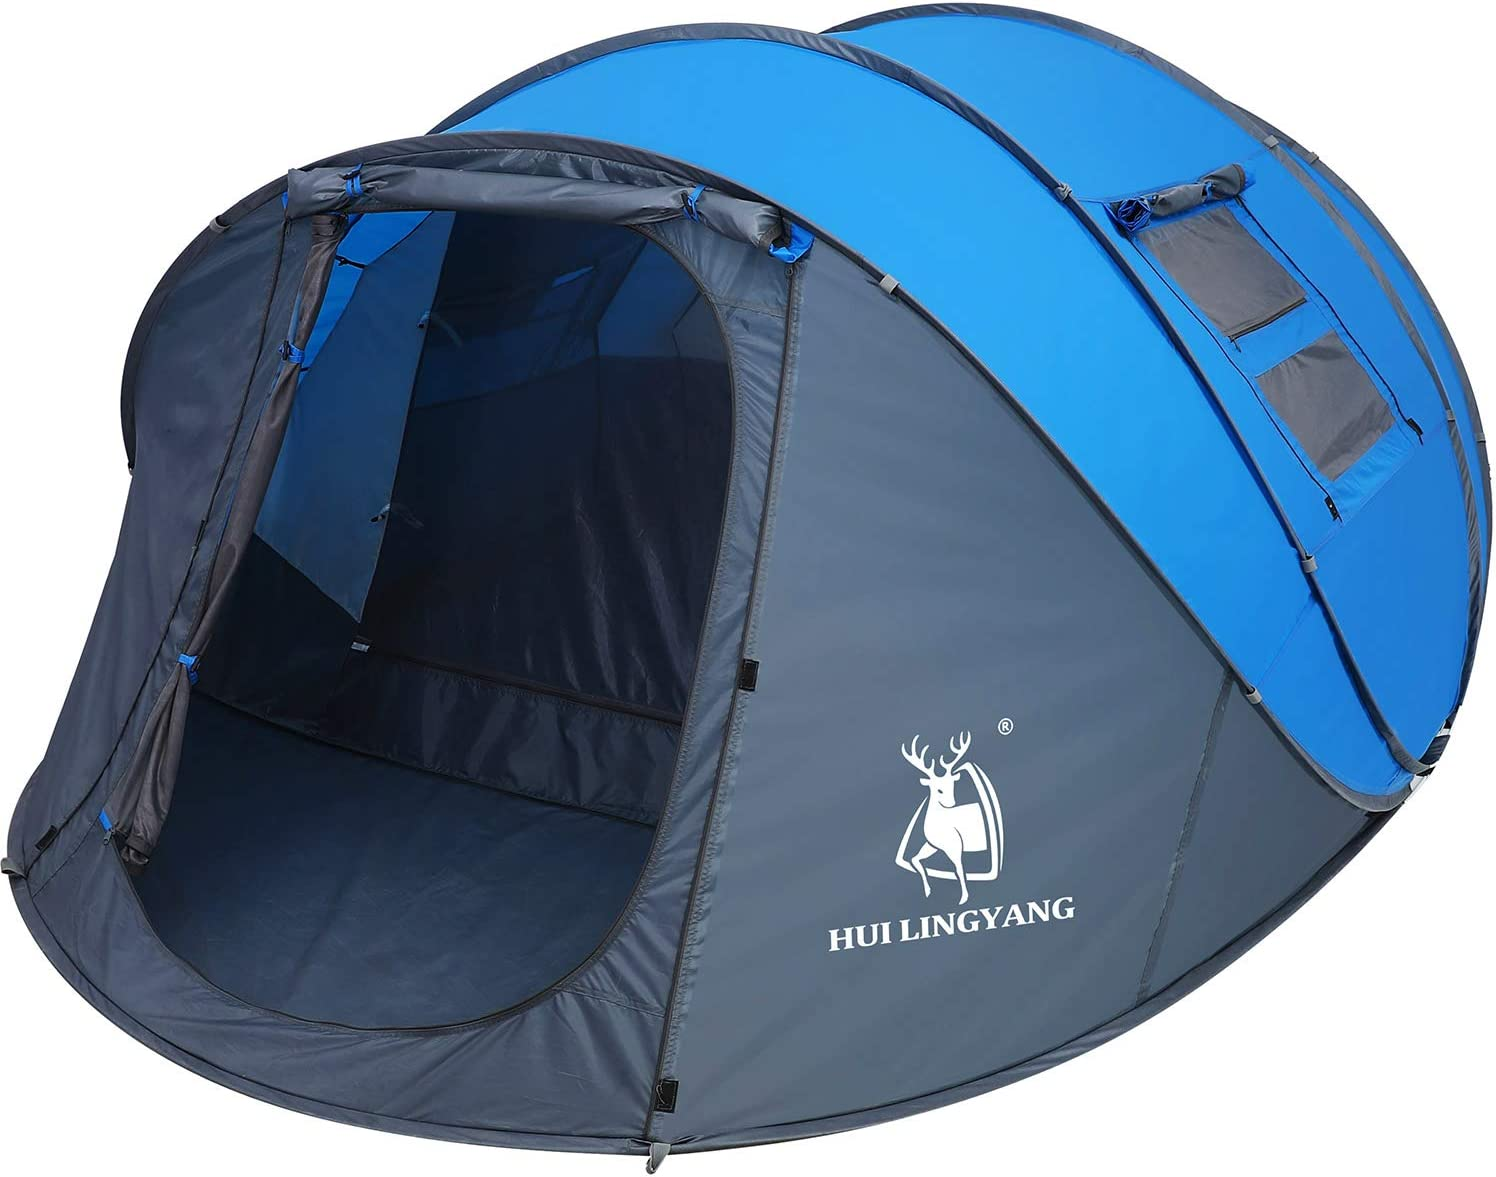 HUI LINGYANG 4 6 Person Easy Pop Up Tent | Instant Family Tent for Camping and Backpacking